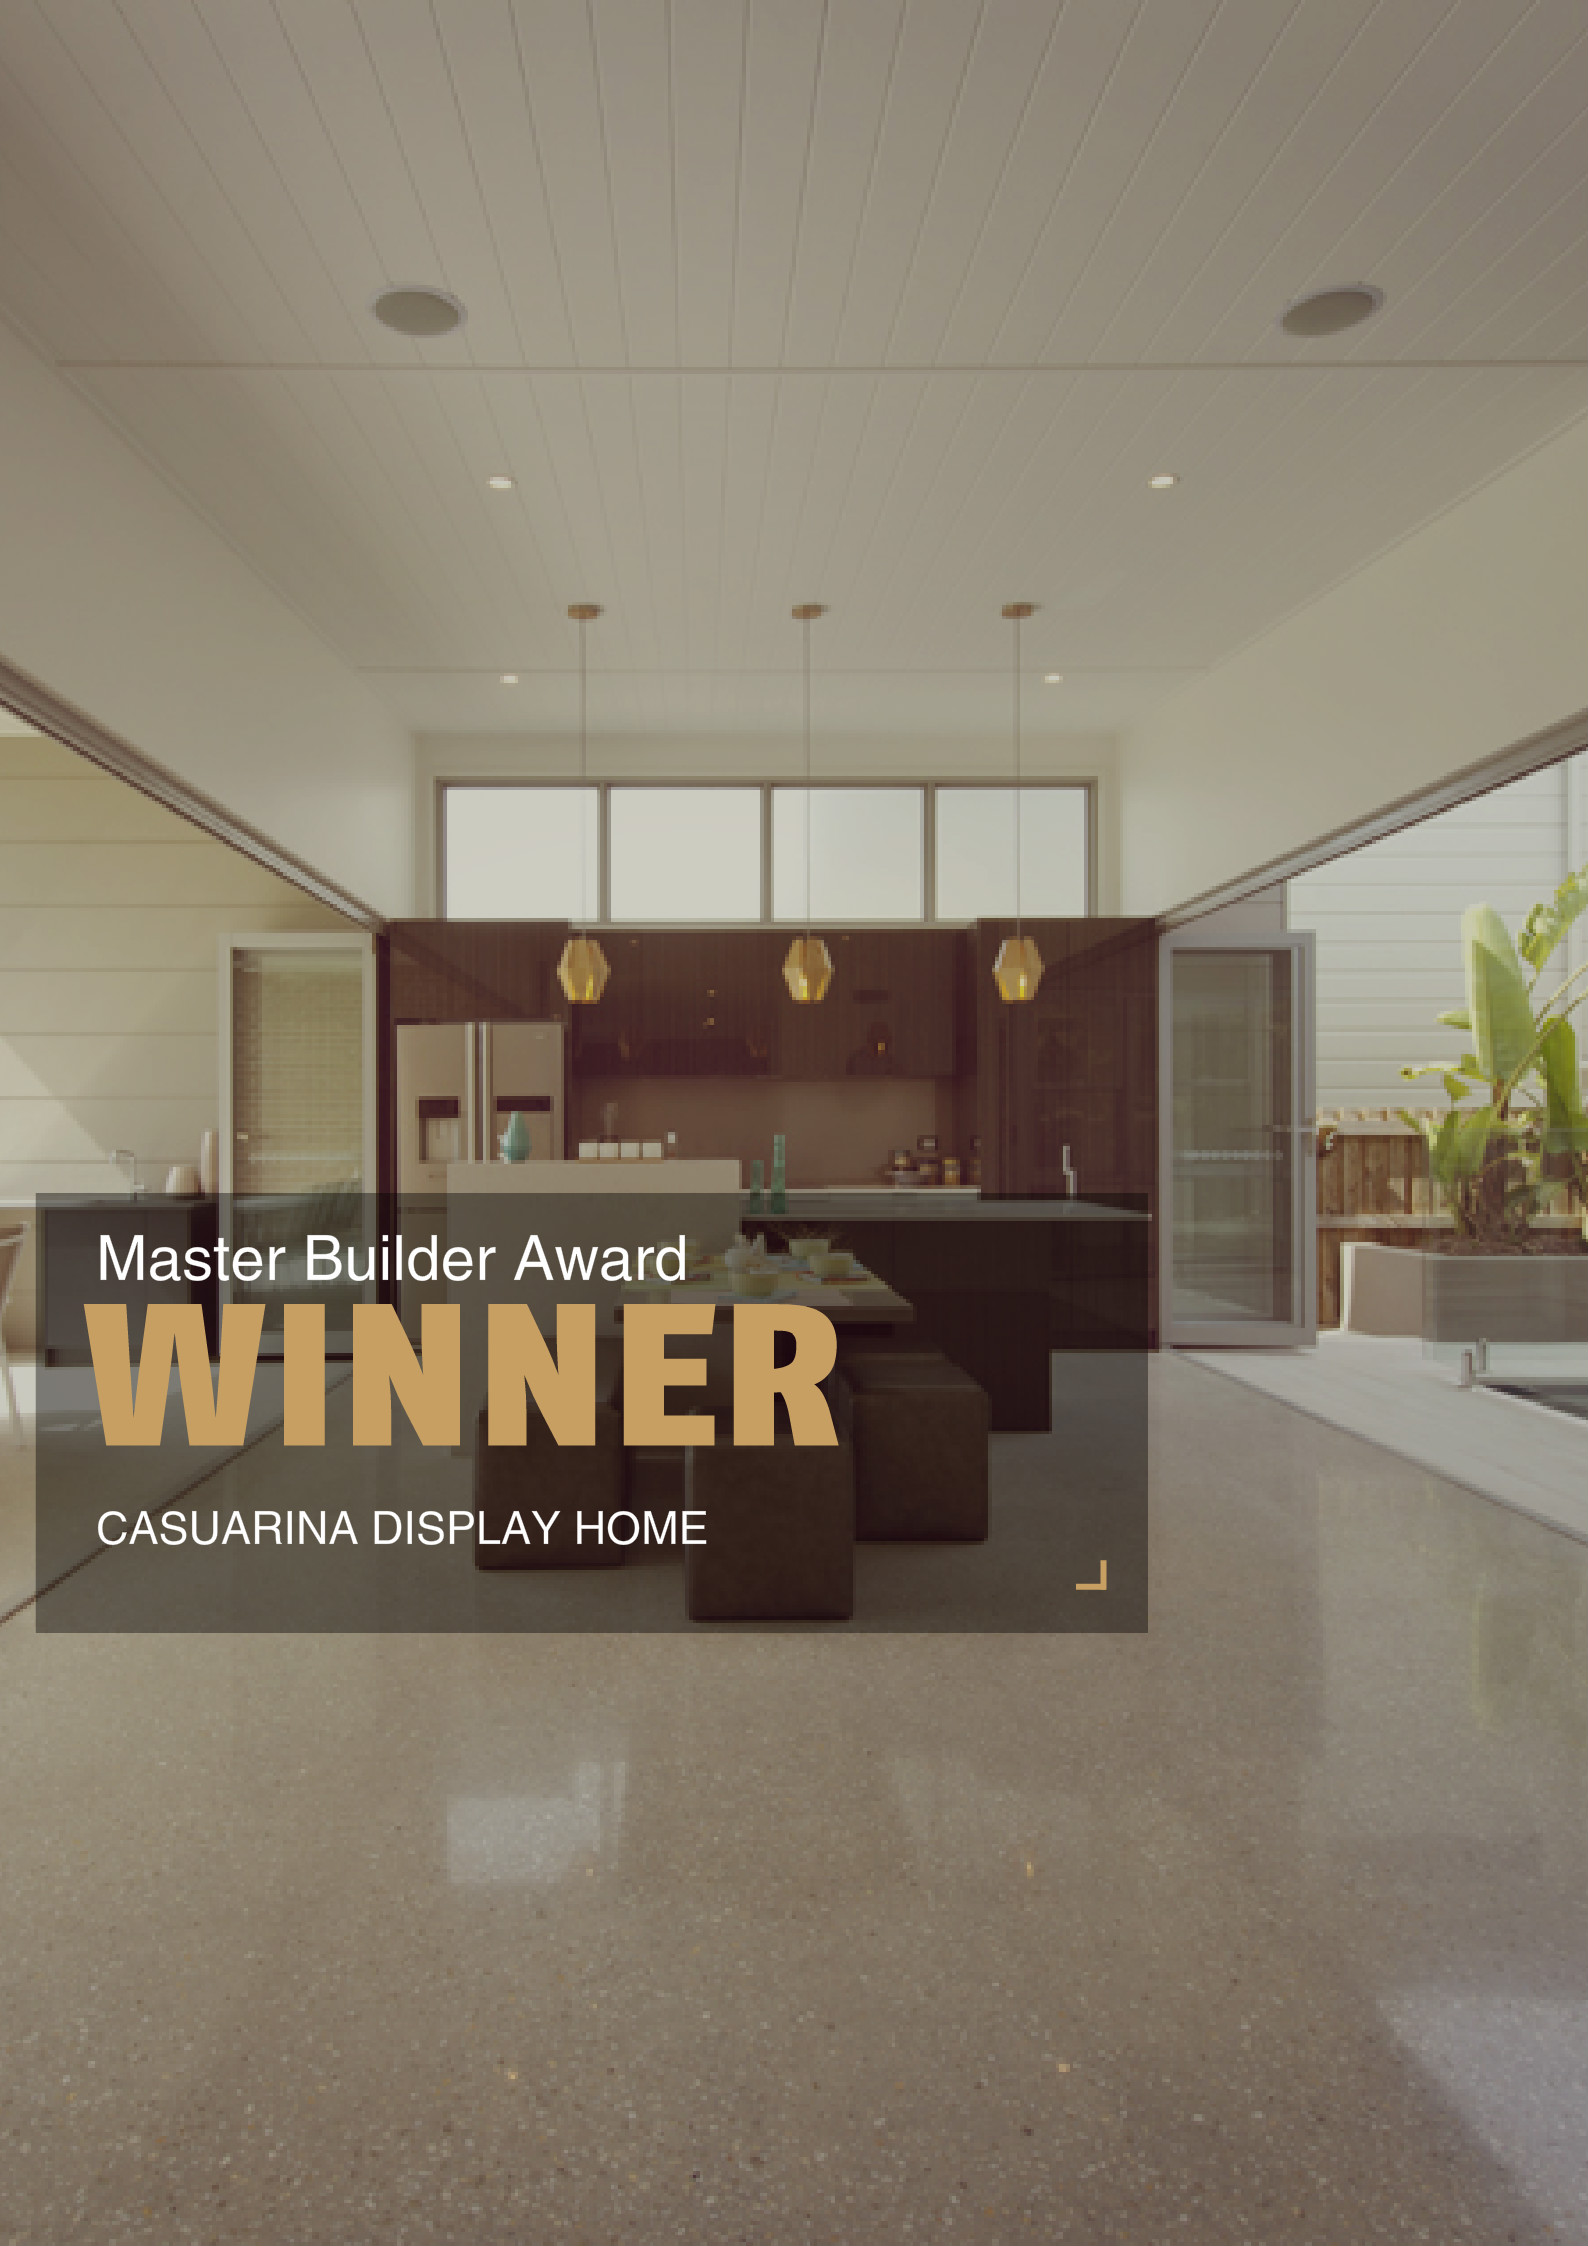 Master Builder Award Winner Display Home.jpg